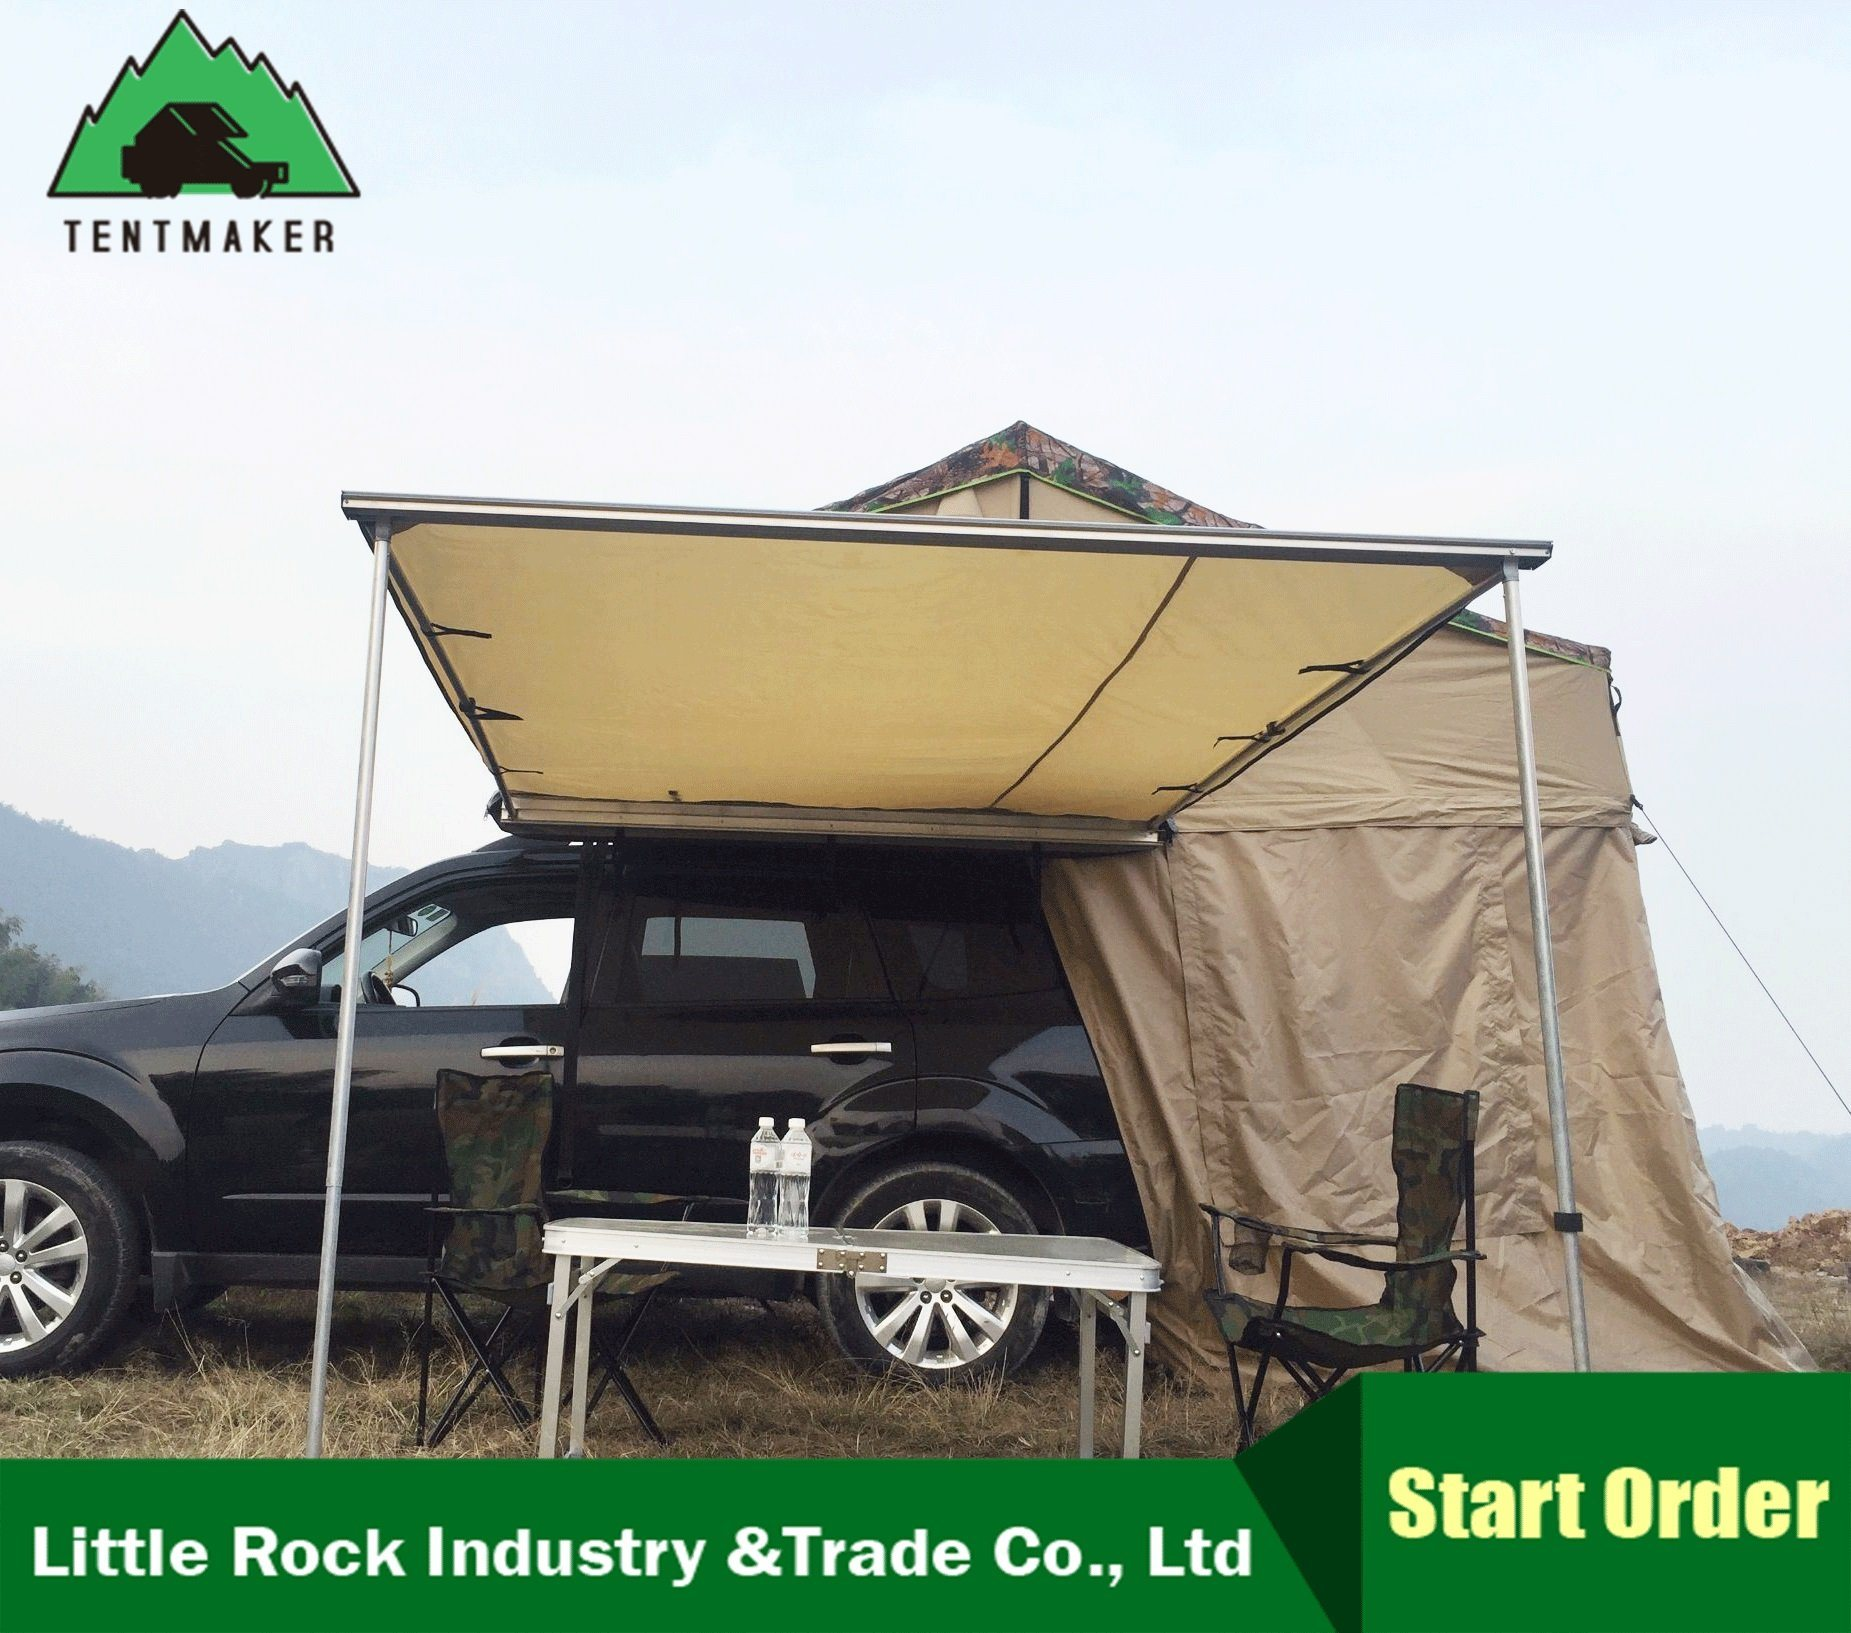 4Wd Awning Tent [hot item] car rear 4wd side awning camping awning